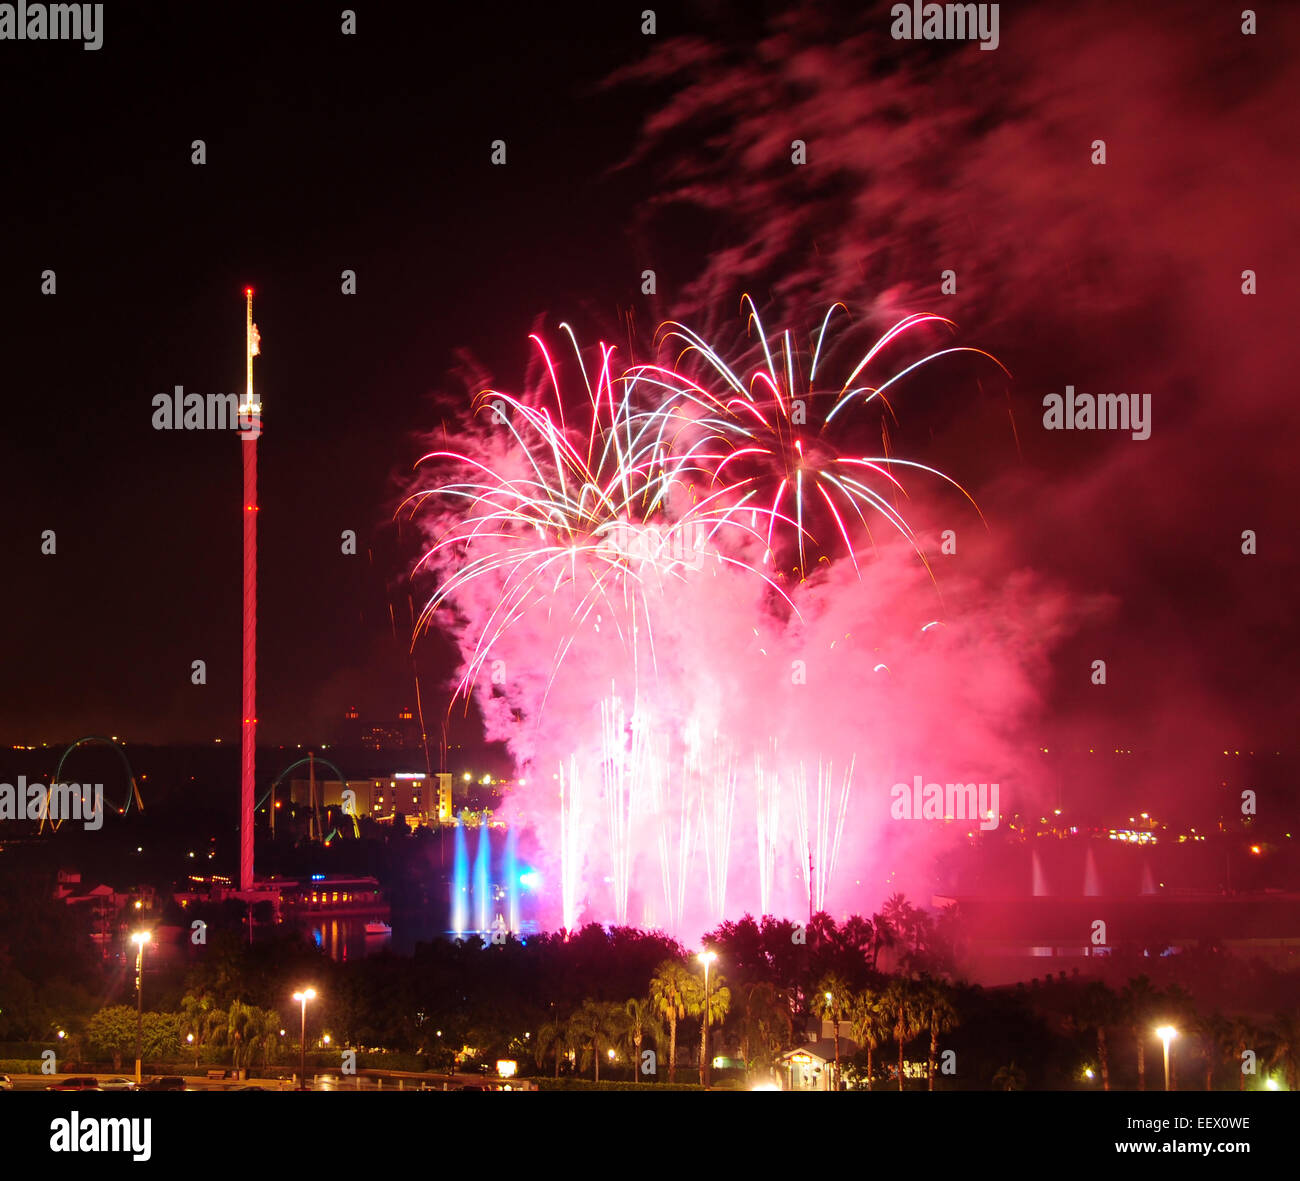 Red and purple fireworks against night sky - Stock Image